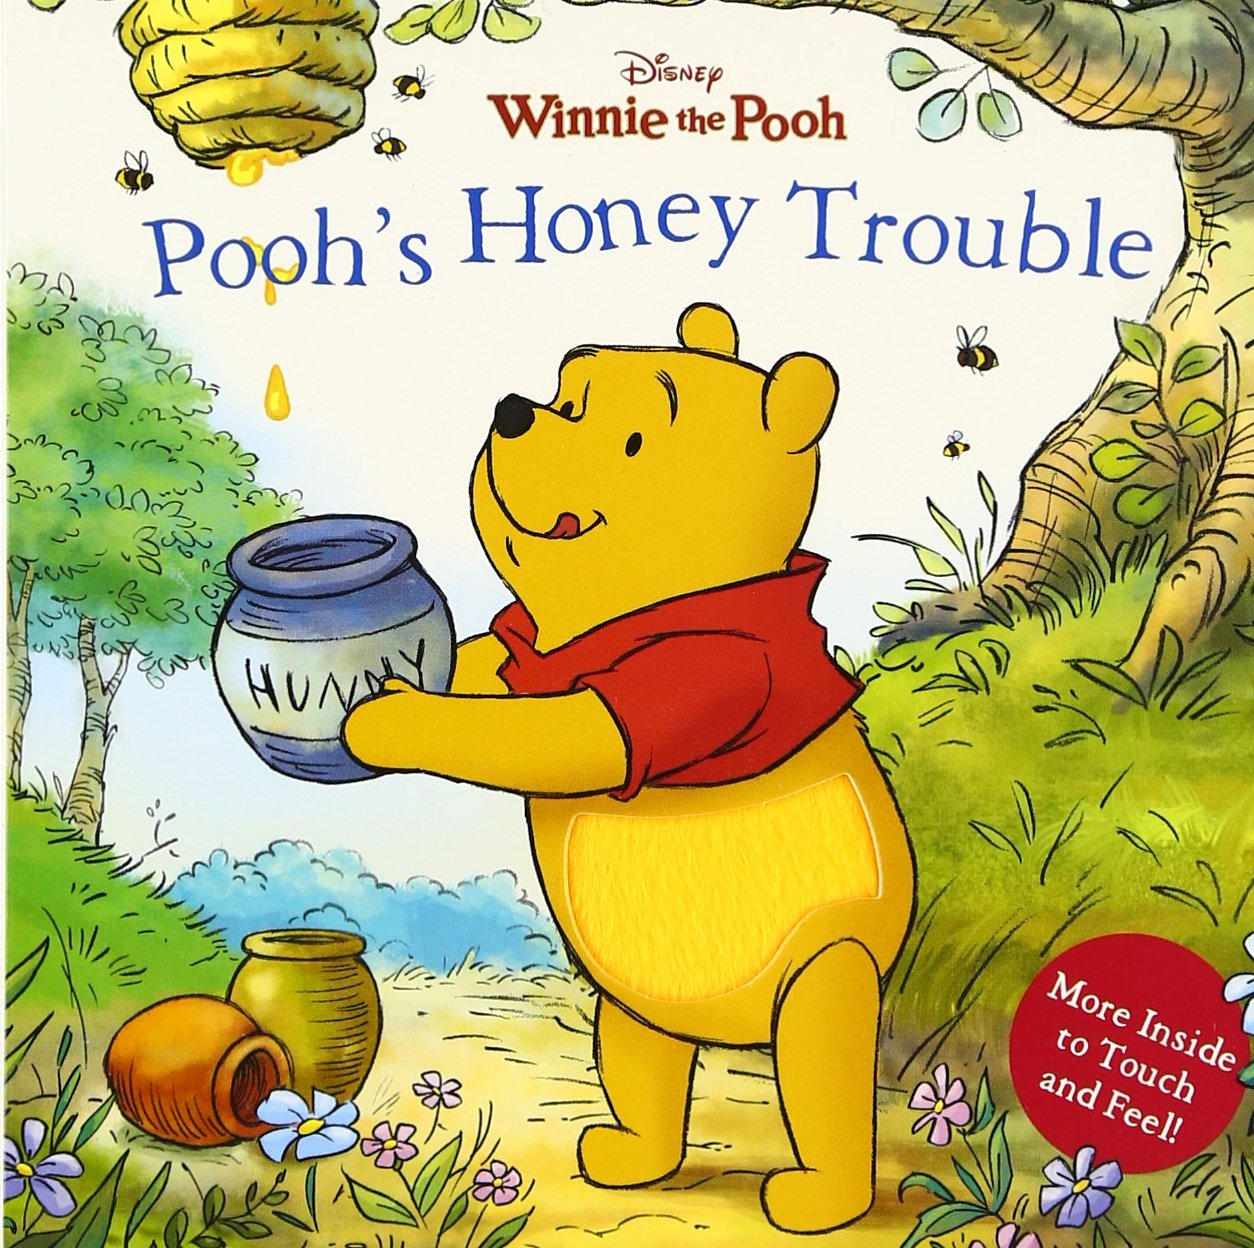 07db8a3a0d Pooh's Honey Trouble (Disney Winnie the Pooh) Board book – February 7, 2012